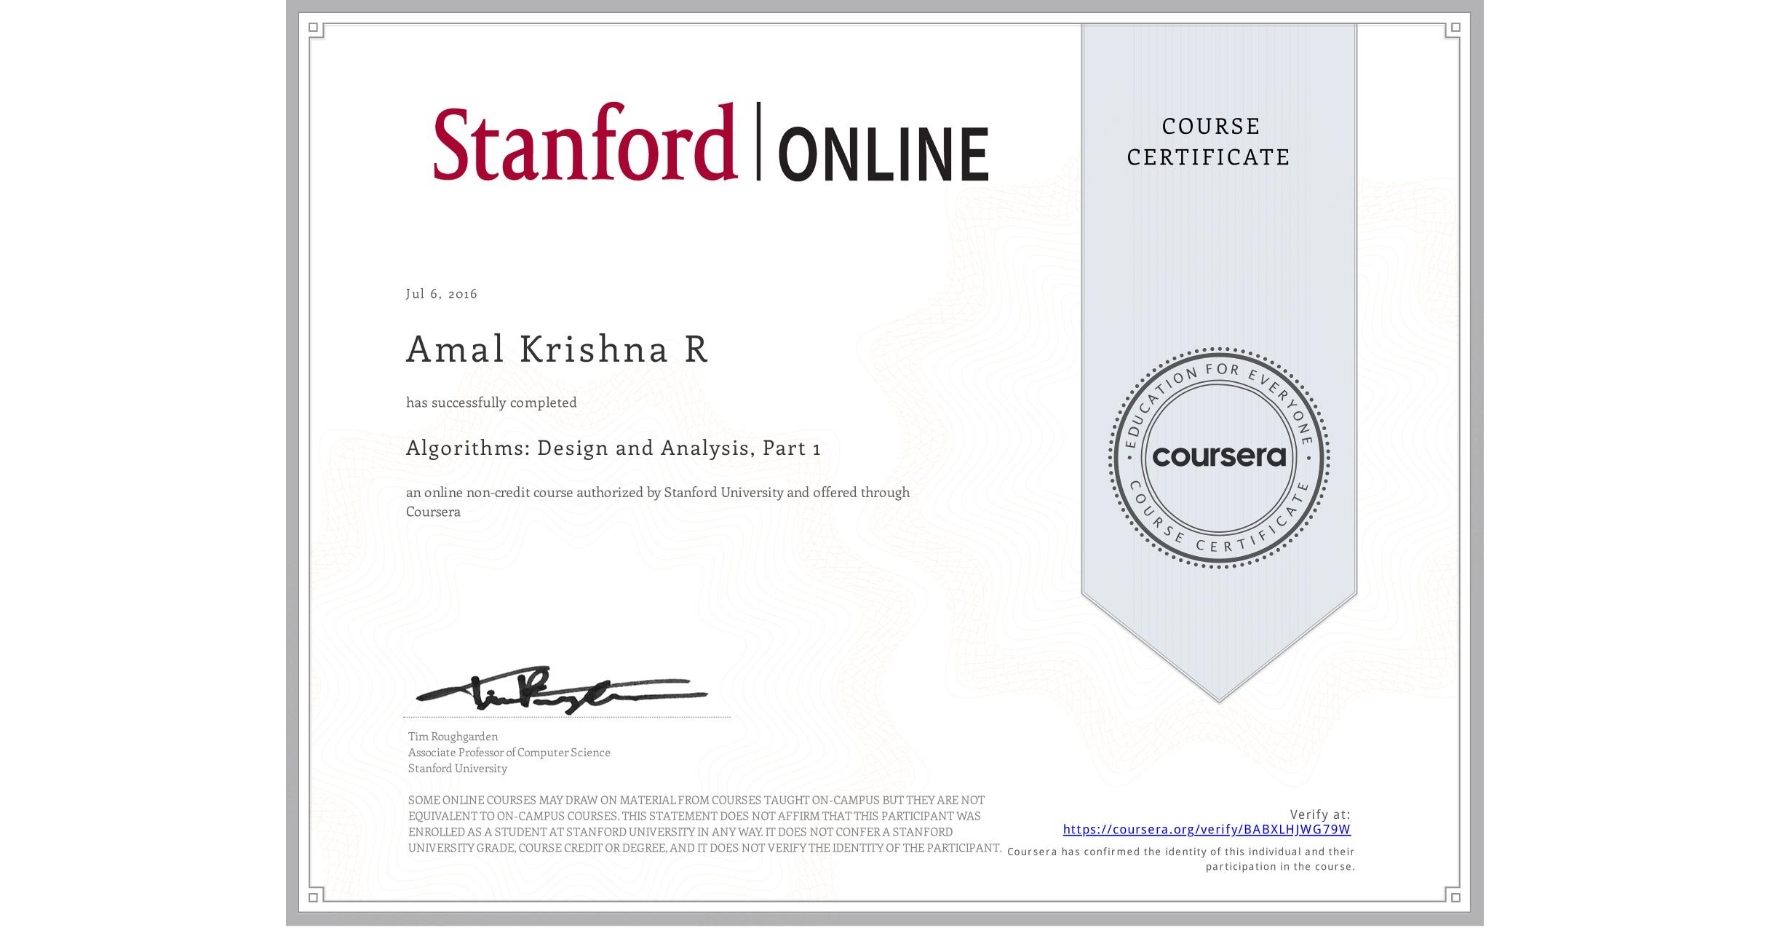 View certificate for Amal Krishna R, Algorithms: Design and Analysis, Part 1, an online non-credit course authorized by Stanford University and offered through Coursera